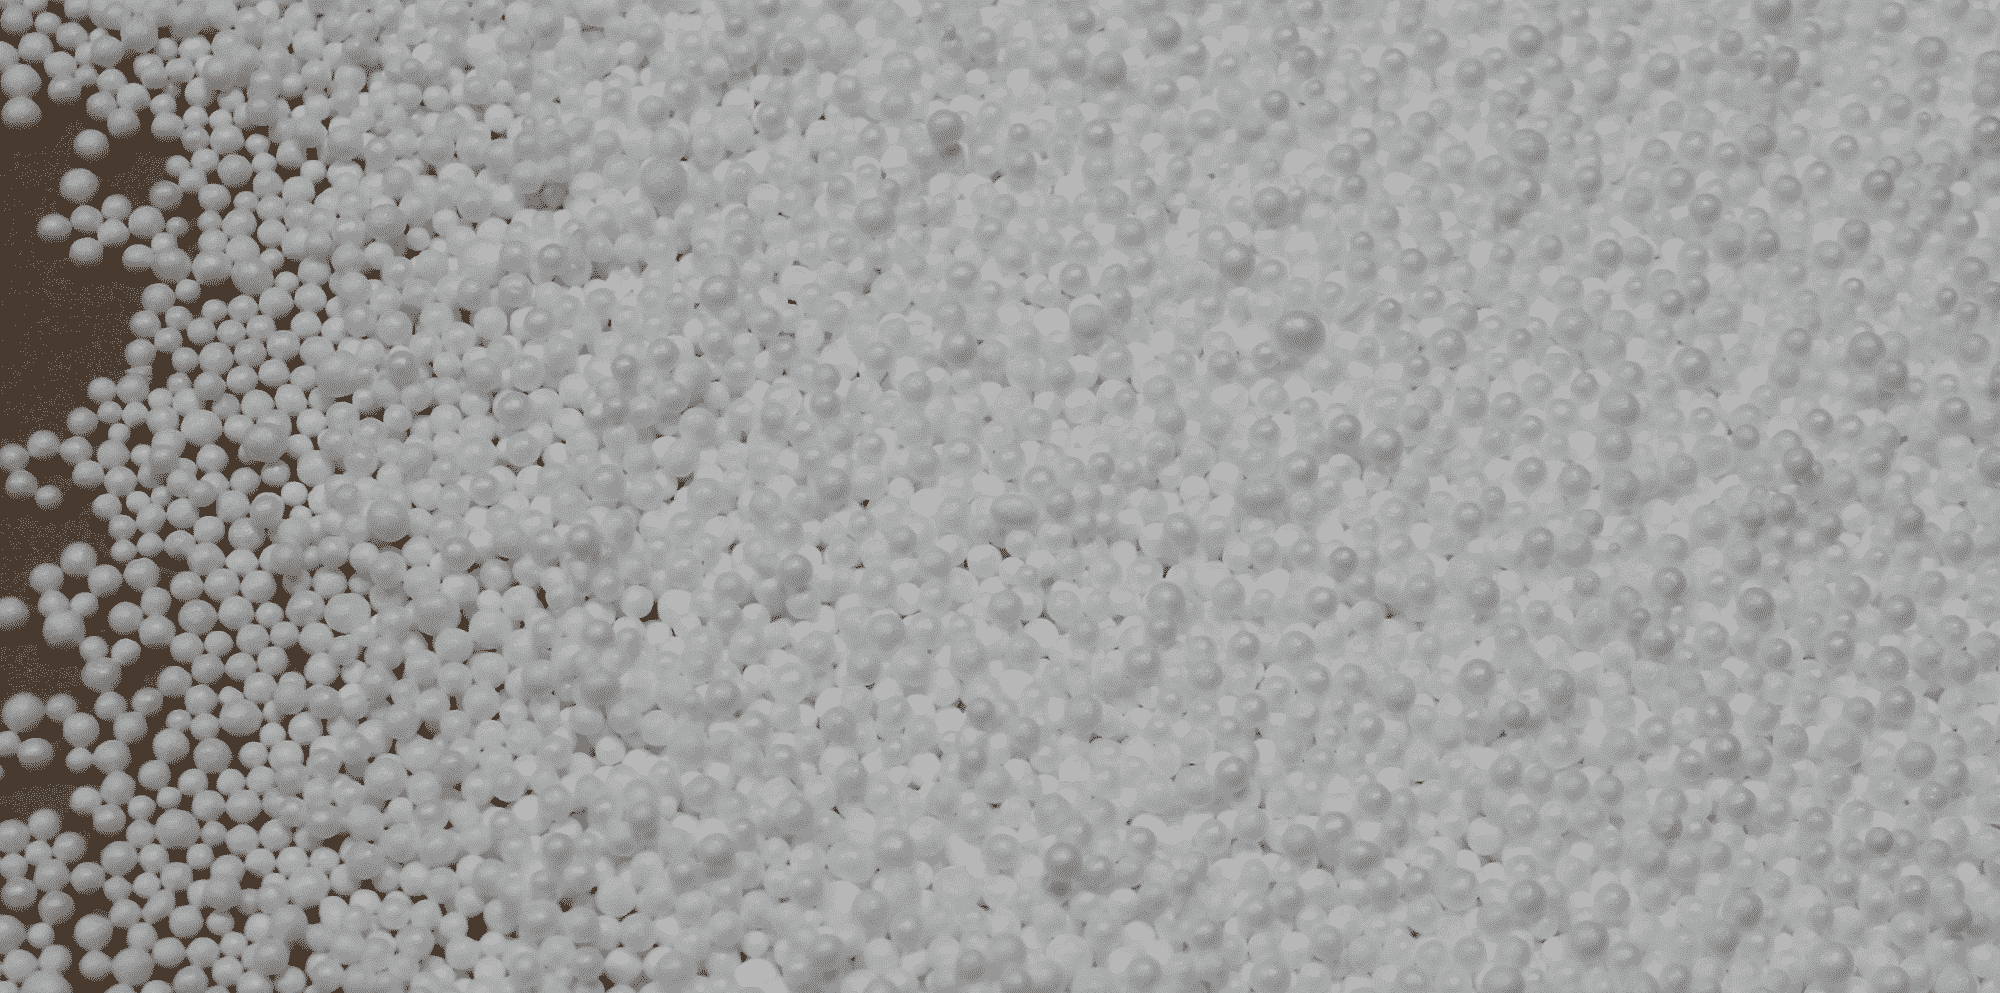 Polyform - Expanded polystyrene